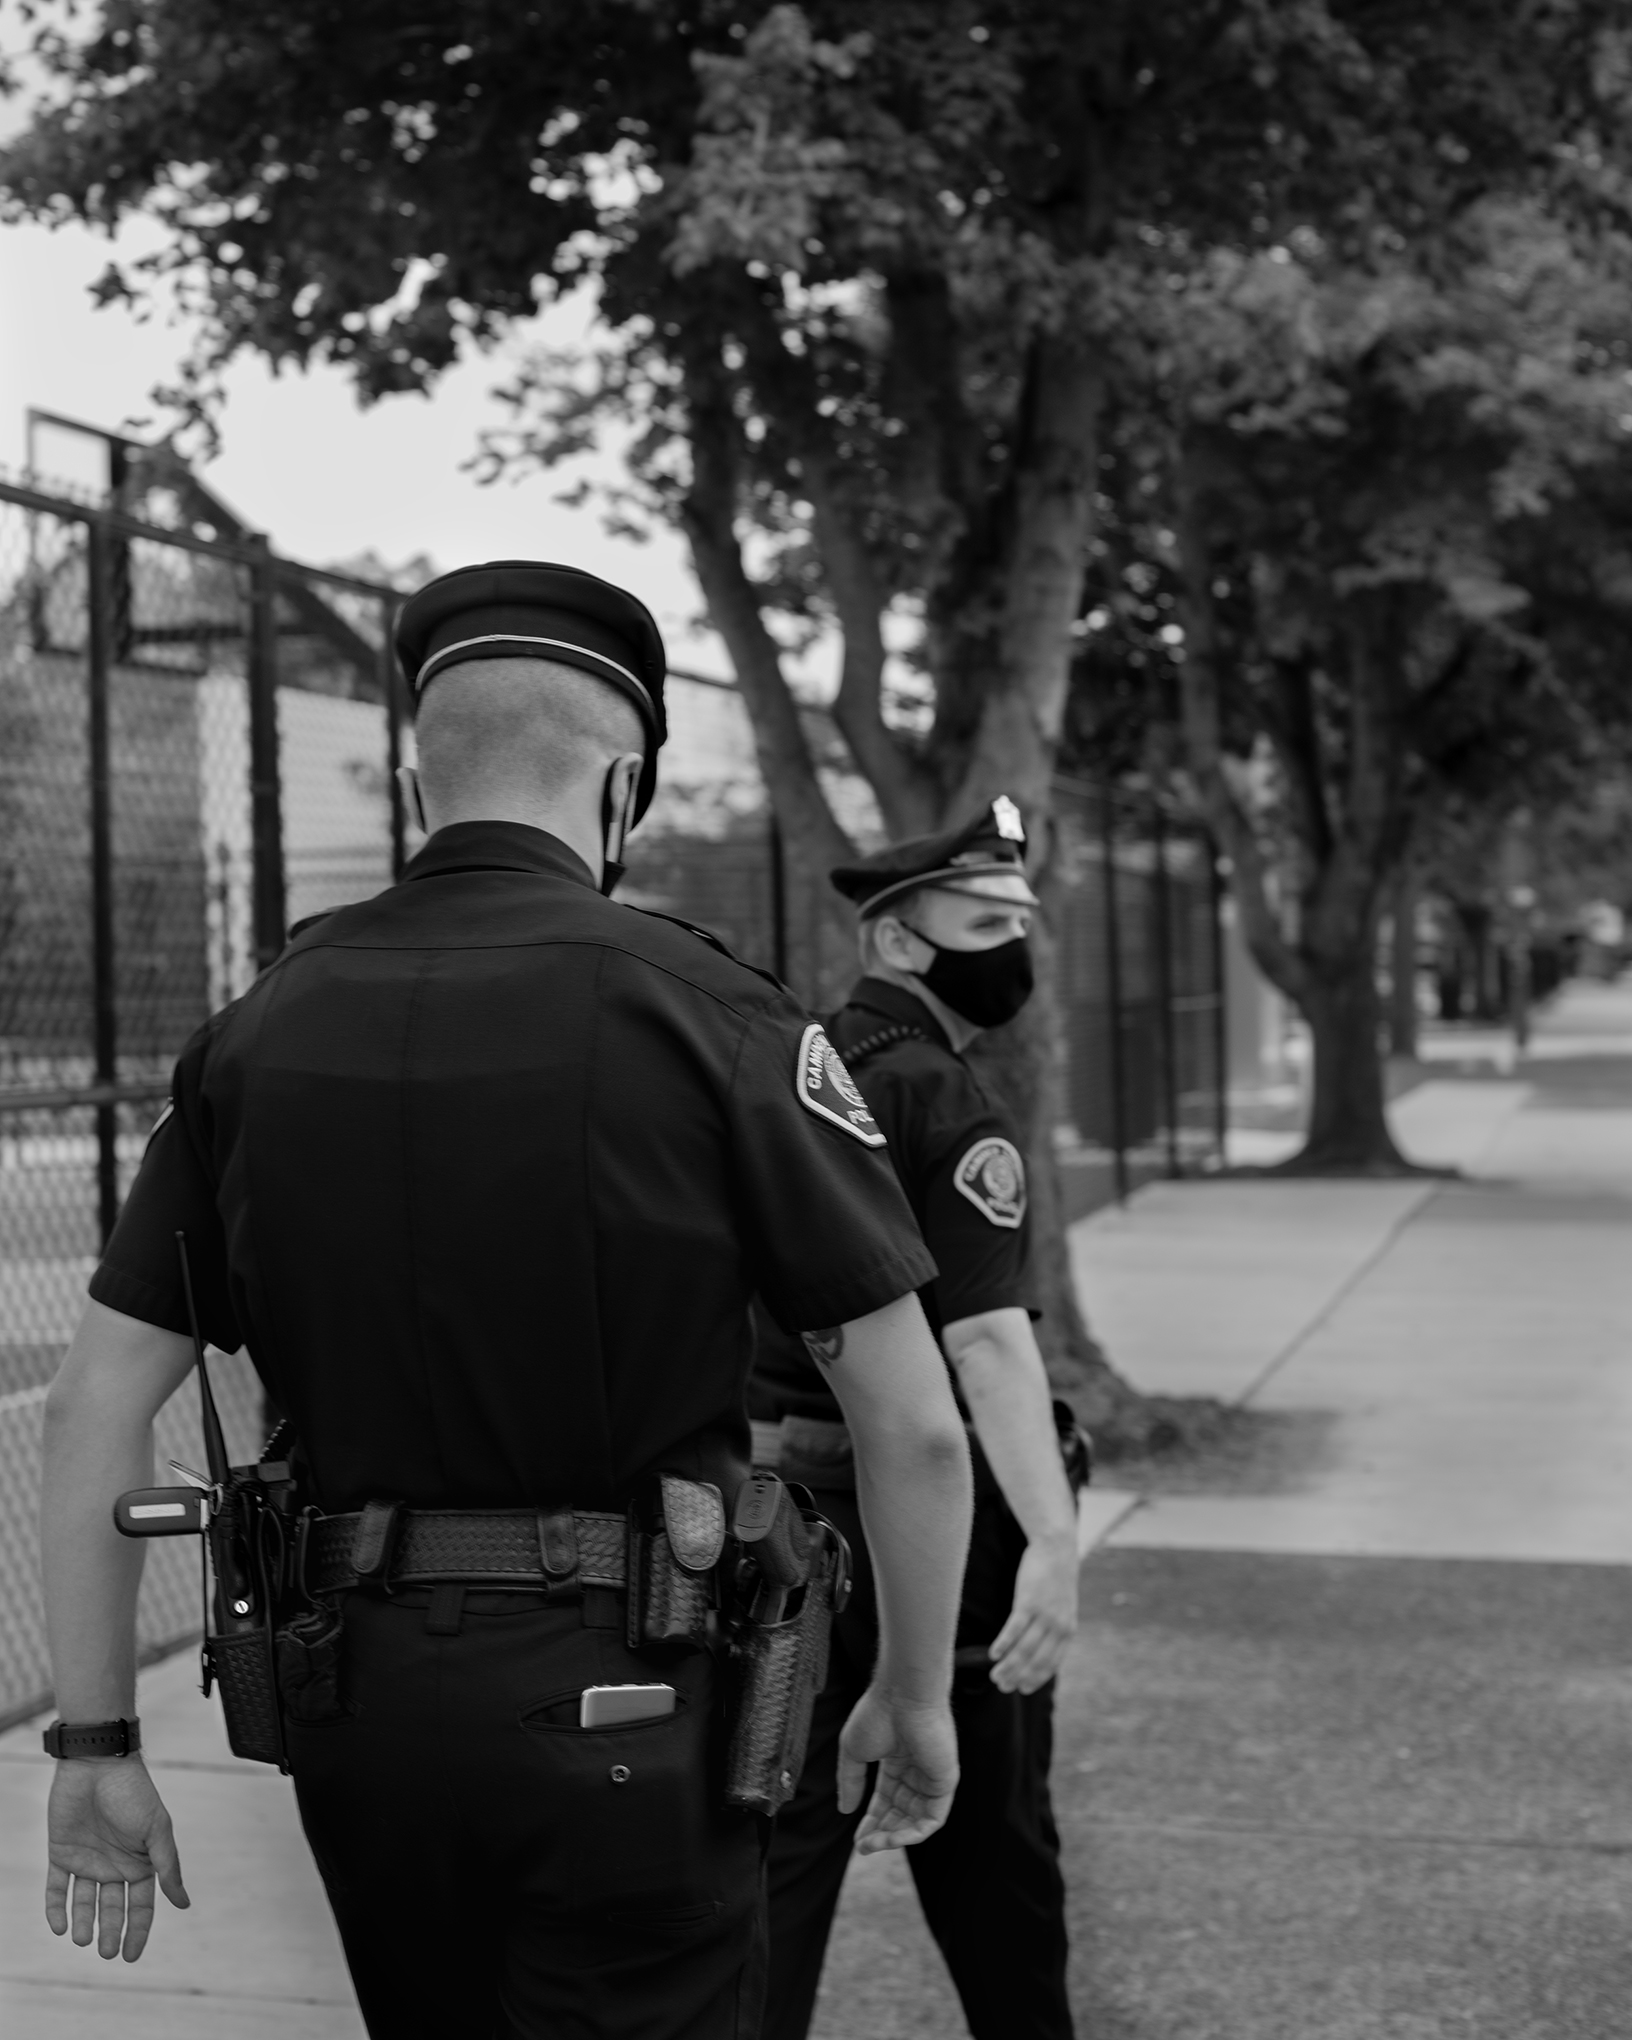 In 2013, when the Camden Police department relaunched under county control, it had two main objectives: reduce the crime rate, and make citizens feel safer. Above, two officers patrol the streets of the city on July 17.